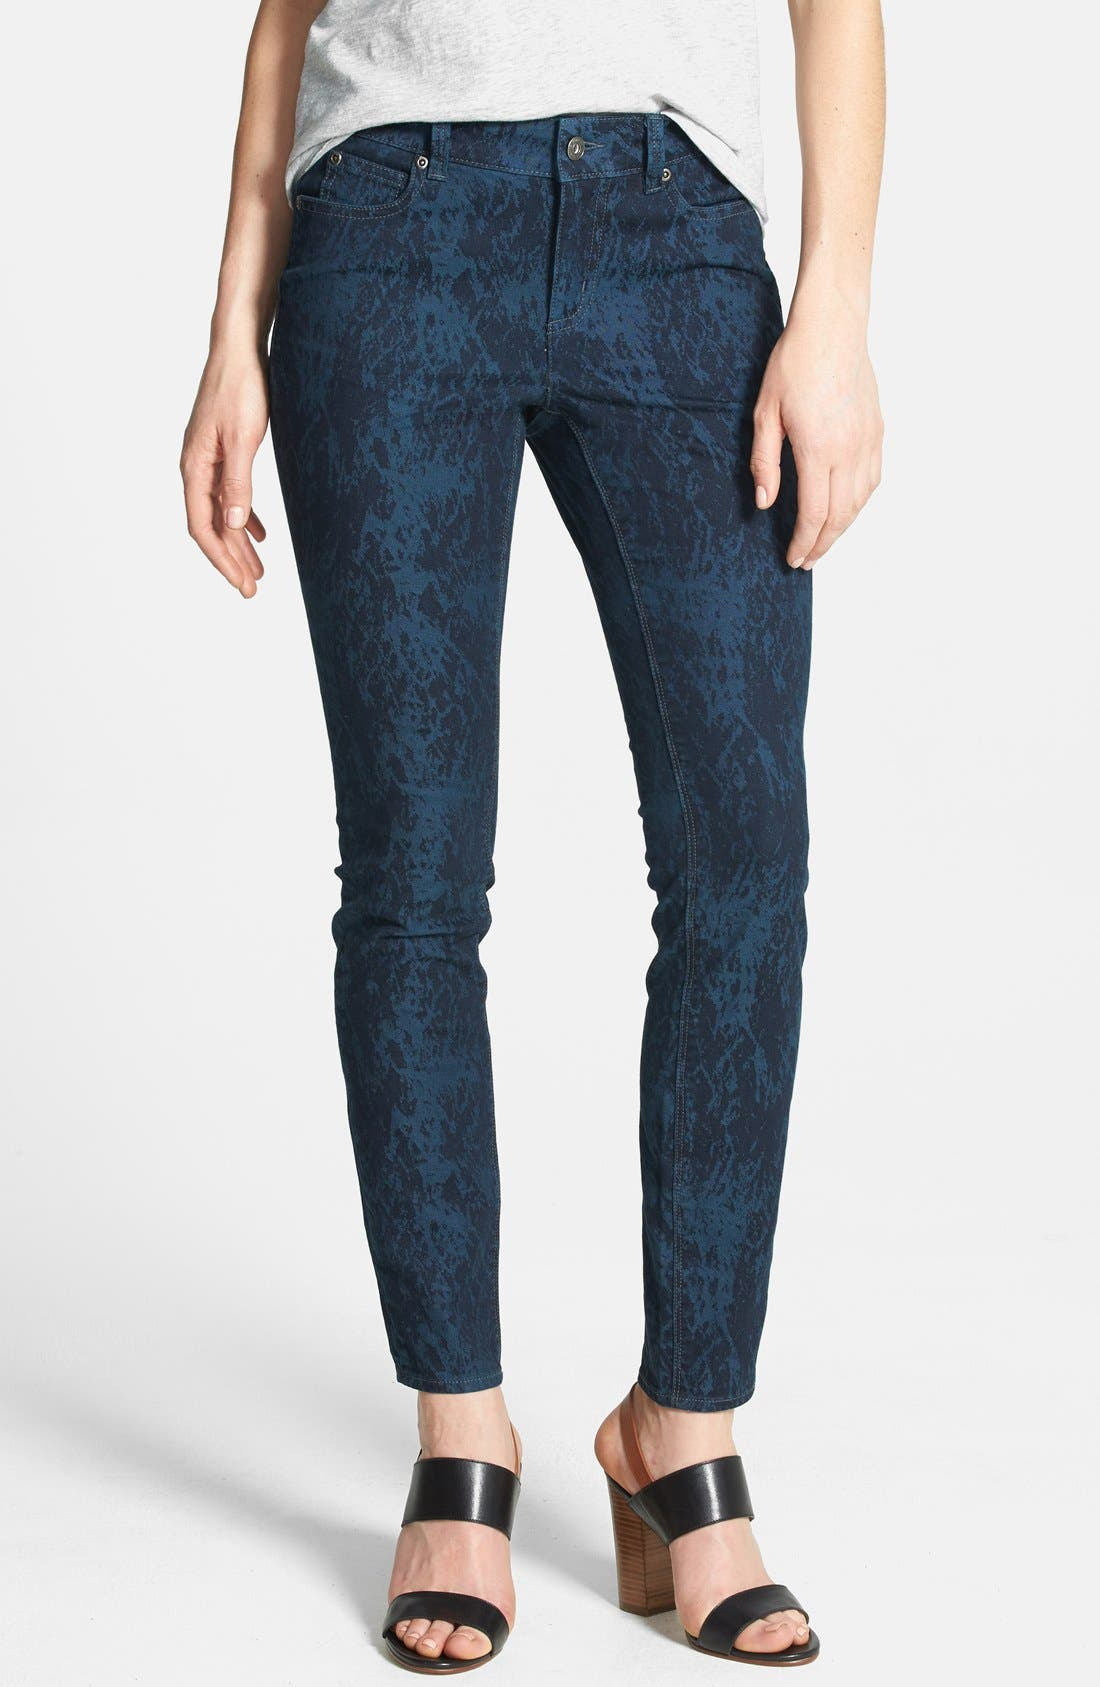 Alternate Image 1 Selected - Two by Vince Camuto 'Paint Splattered' Print Skinny Jeans (Blue Night)